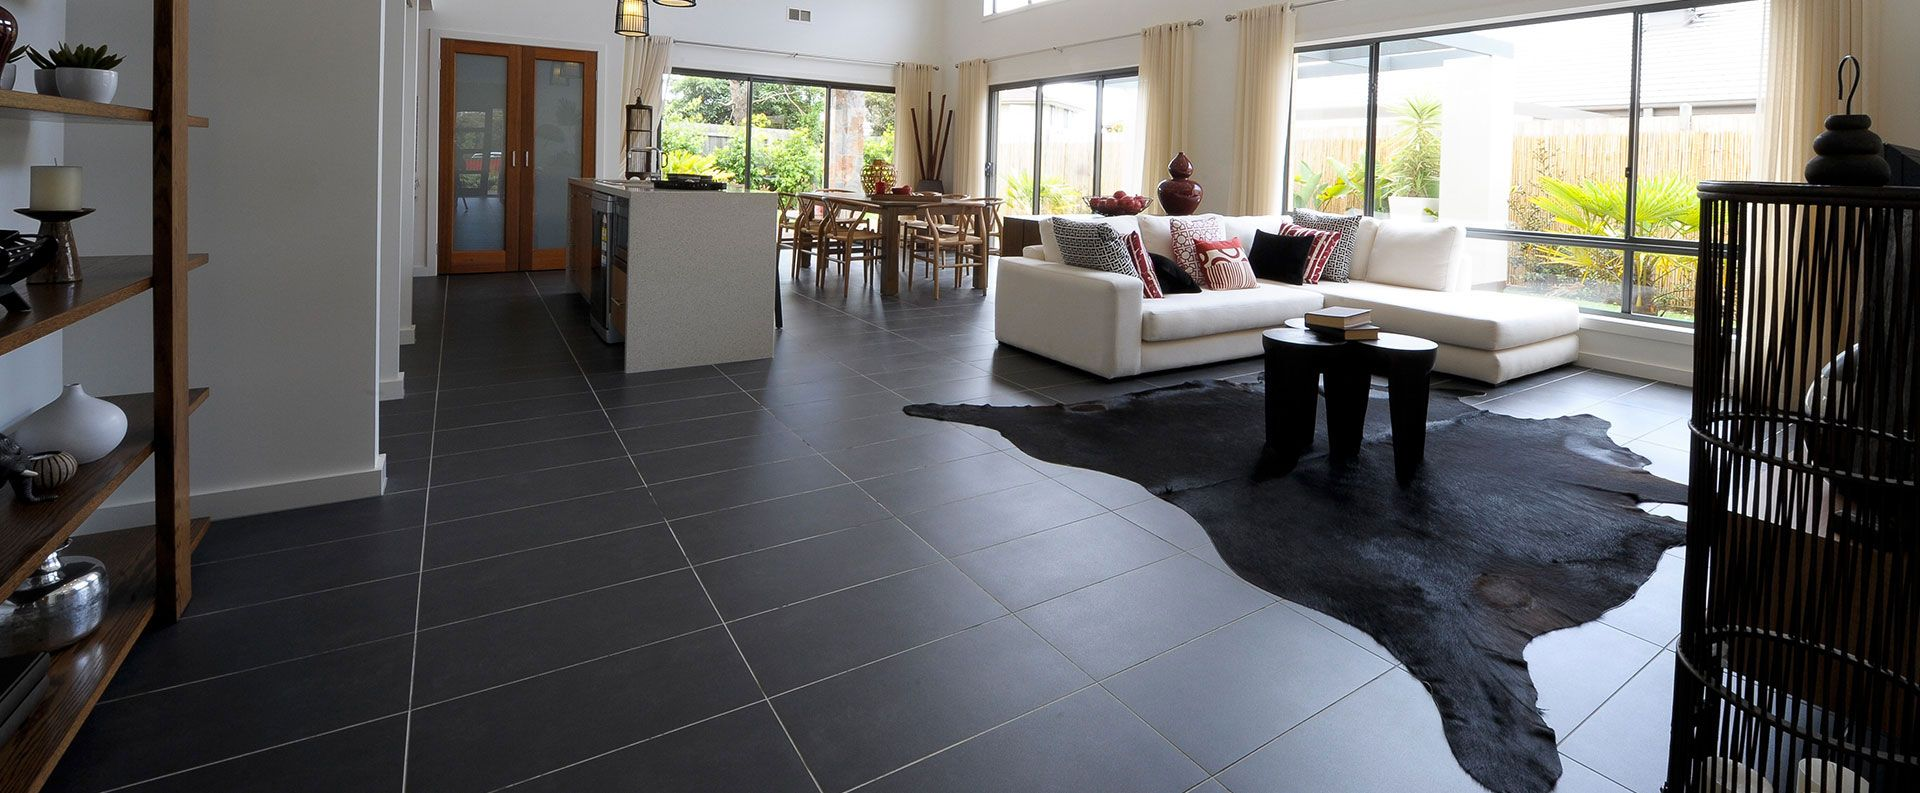 Are you want to buy porcelian floor tiles online? Shades of Stone is ...